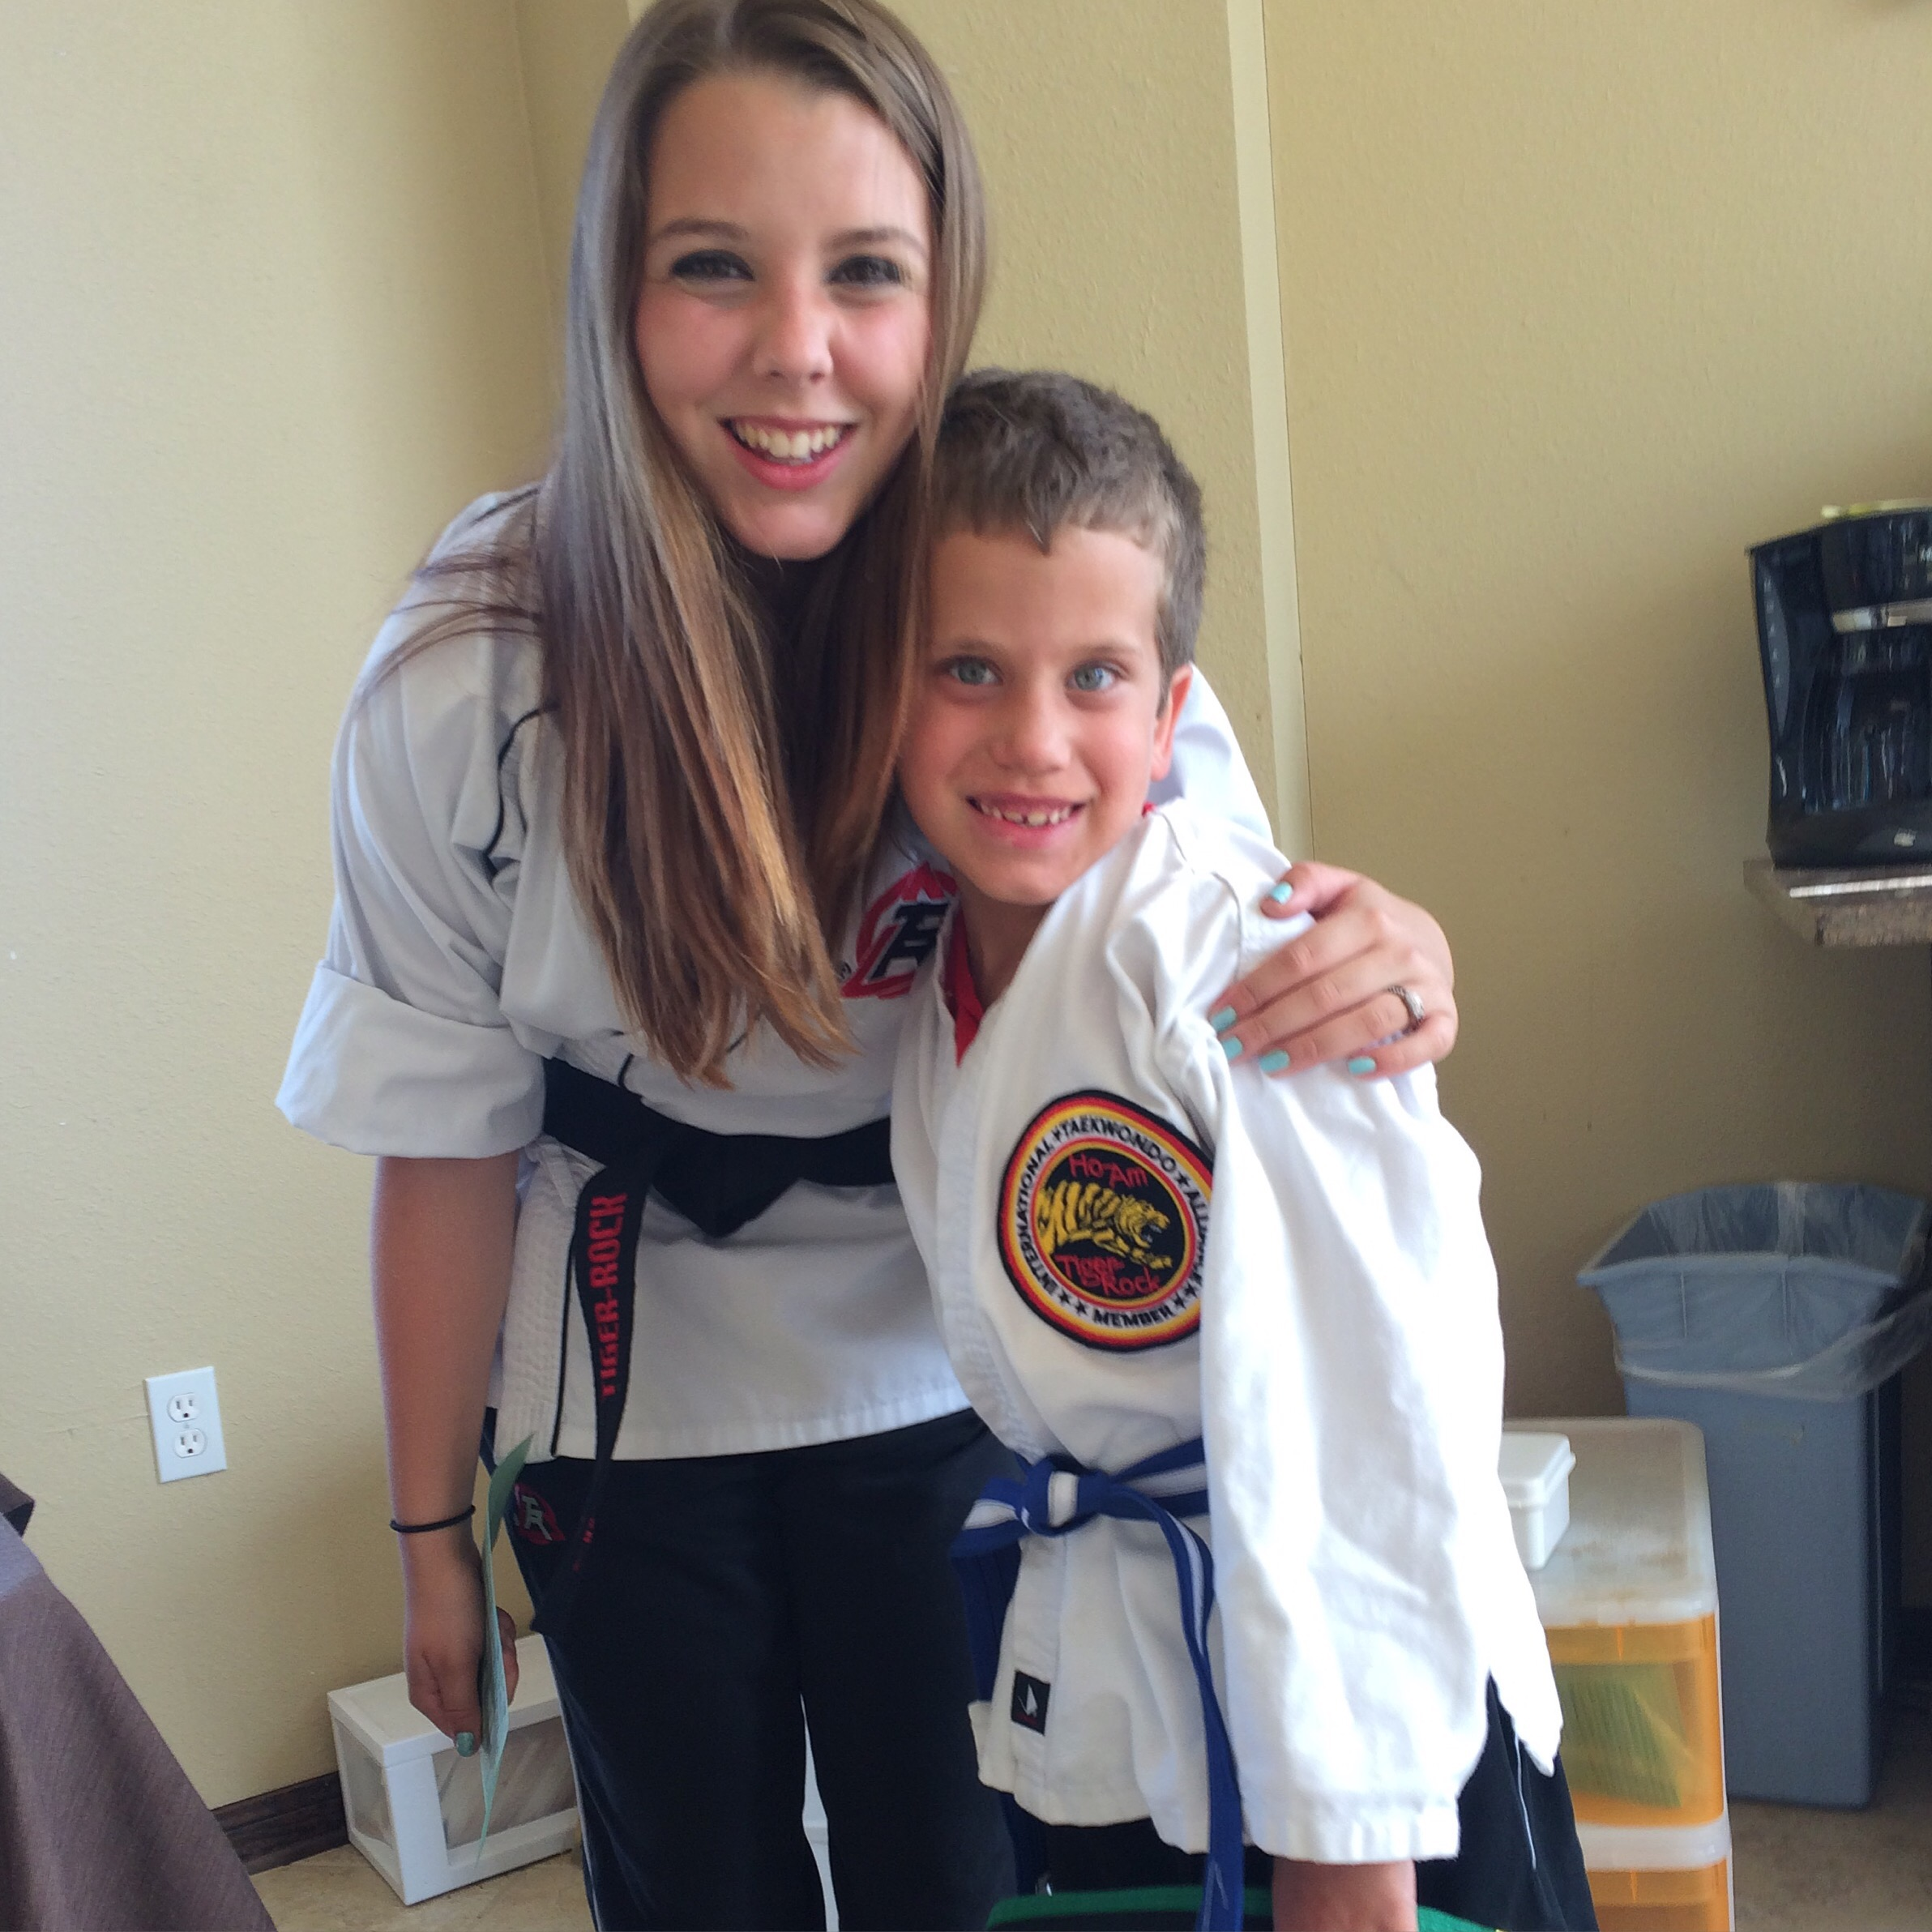 Tae Kwon Do: Blue belt and 2nd Degree Black Belt